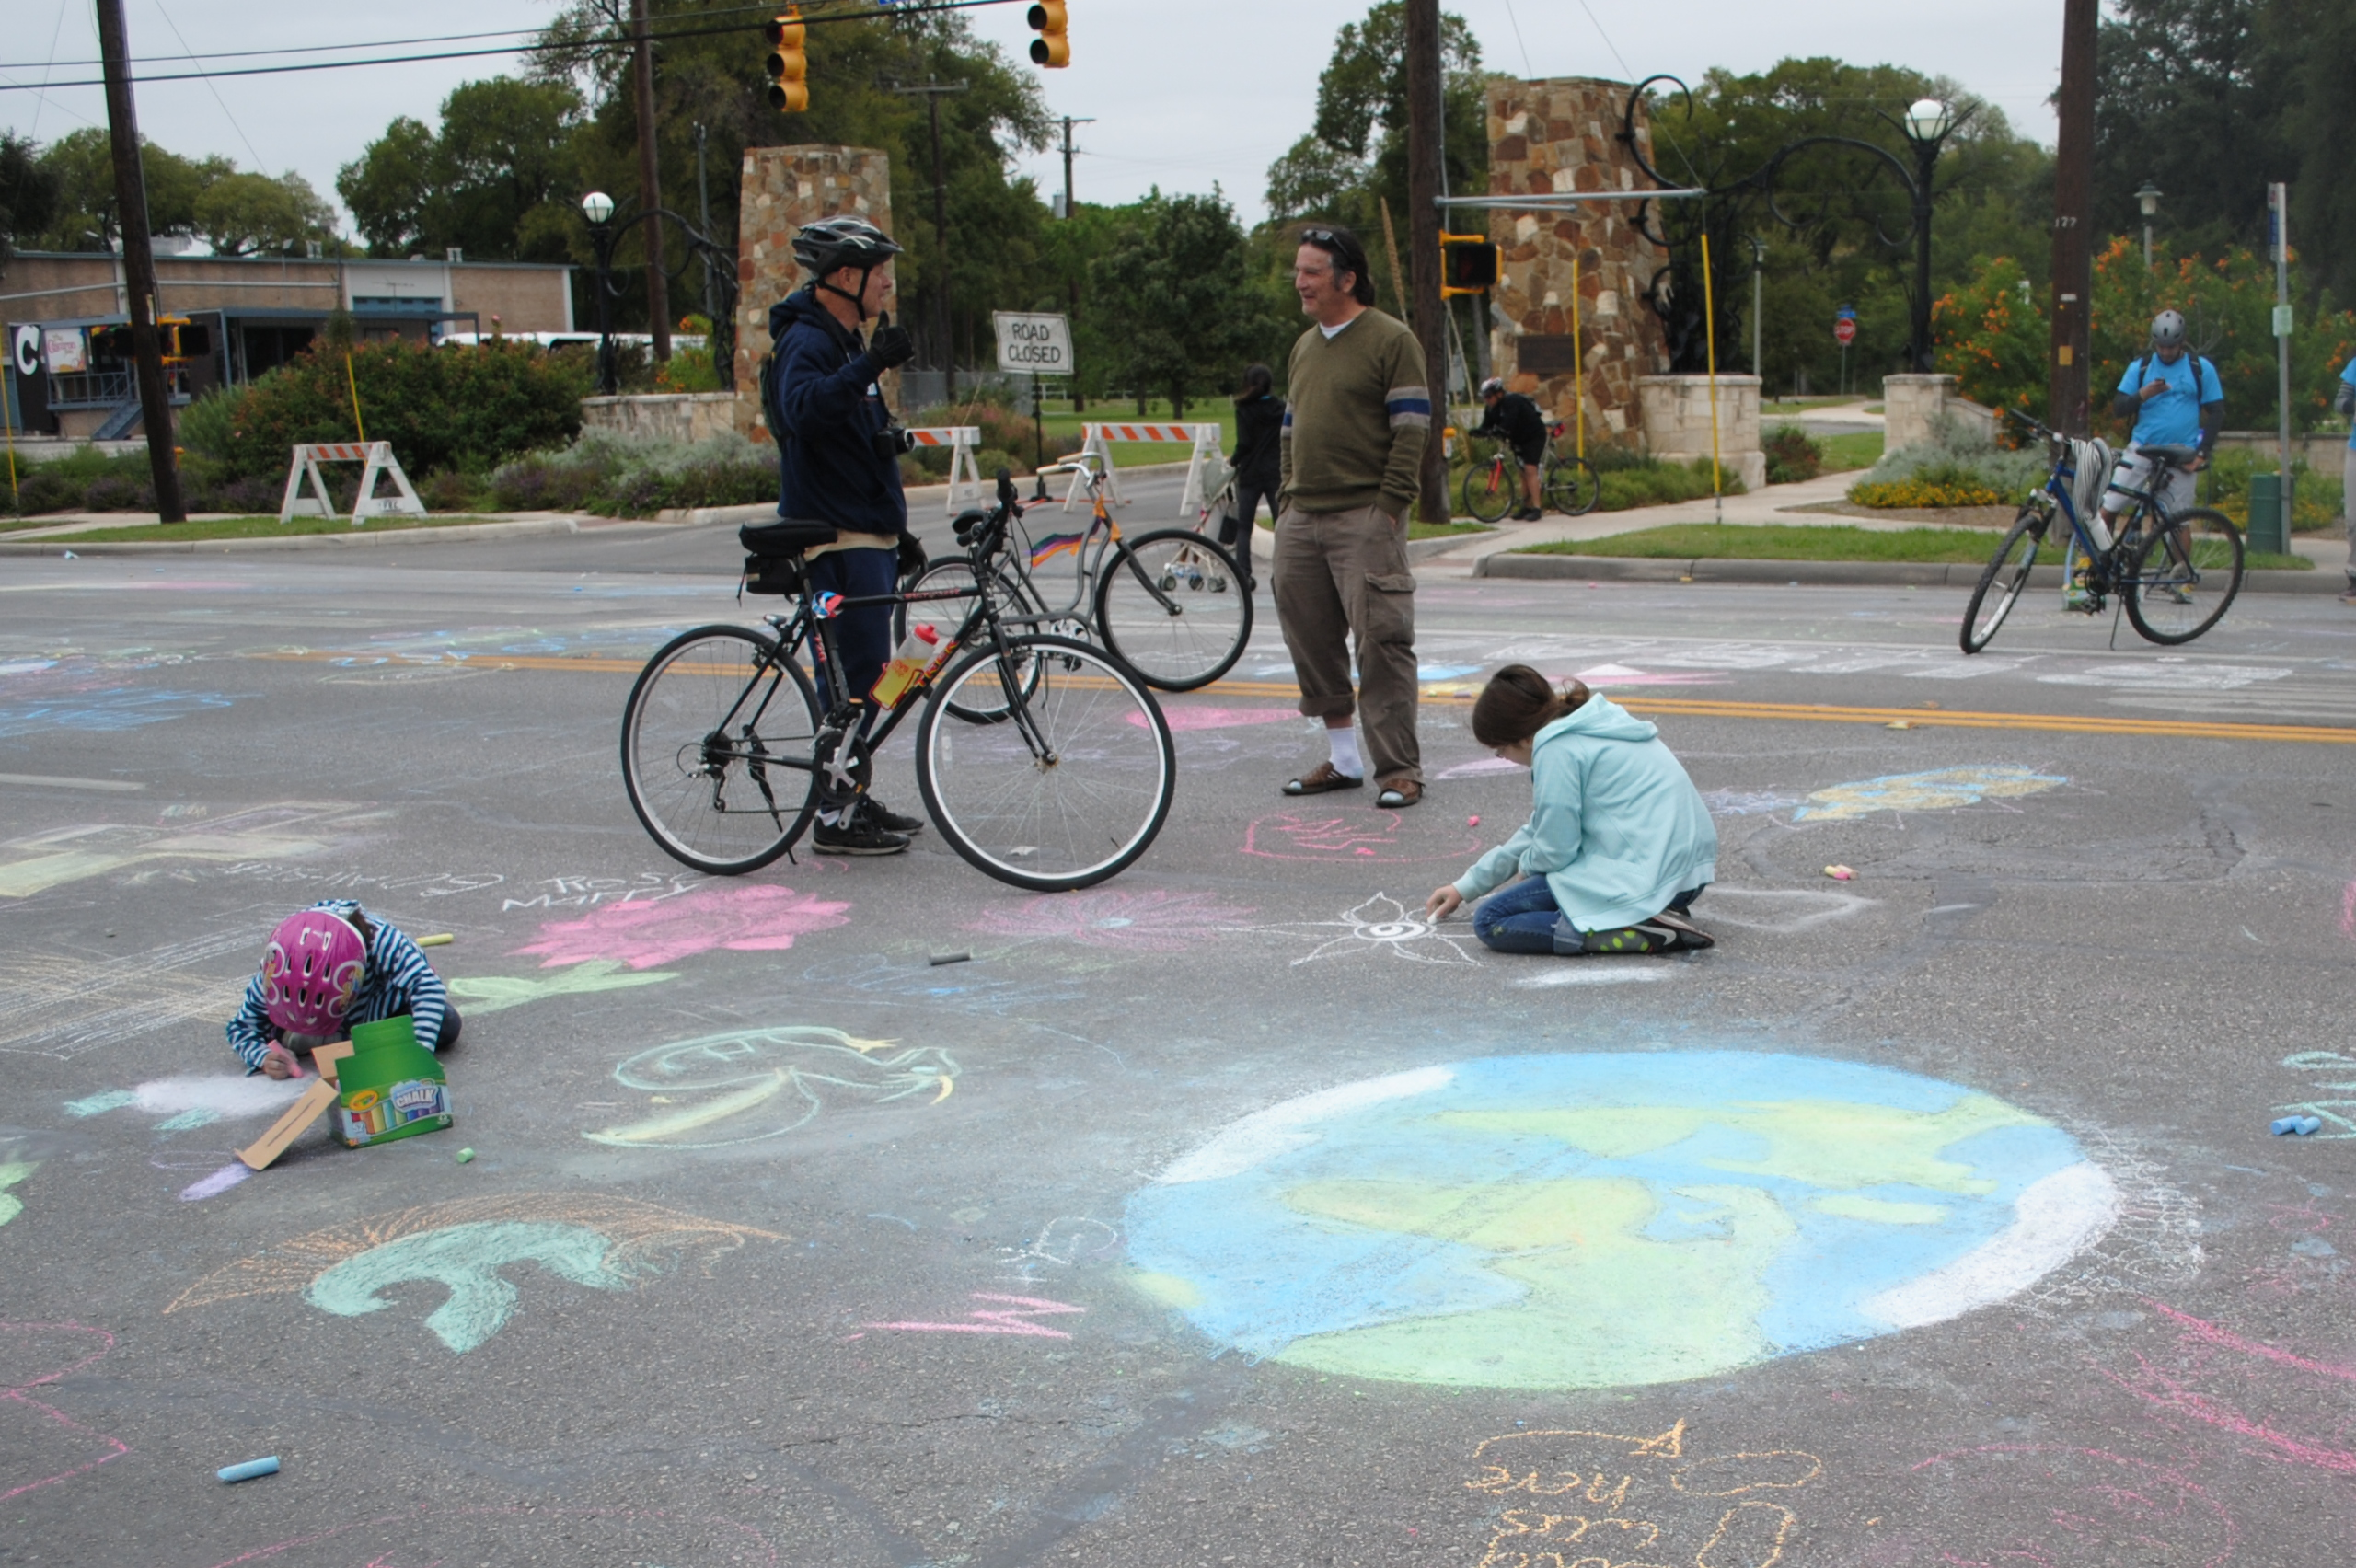 Sidewalk chalk was a very popular activity during Siclovia last year (2012). Kids, artists, and parents decided to have some fun on the rarely closed-off roads. Photo by Alexander Gandara.